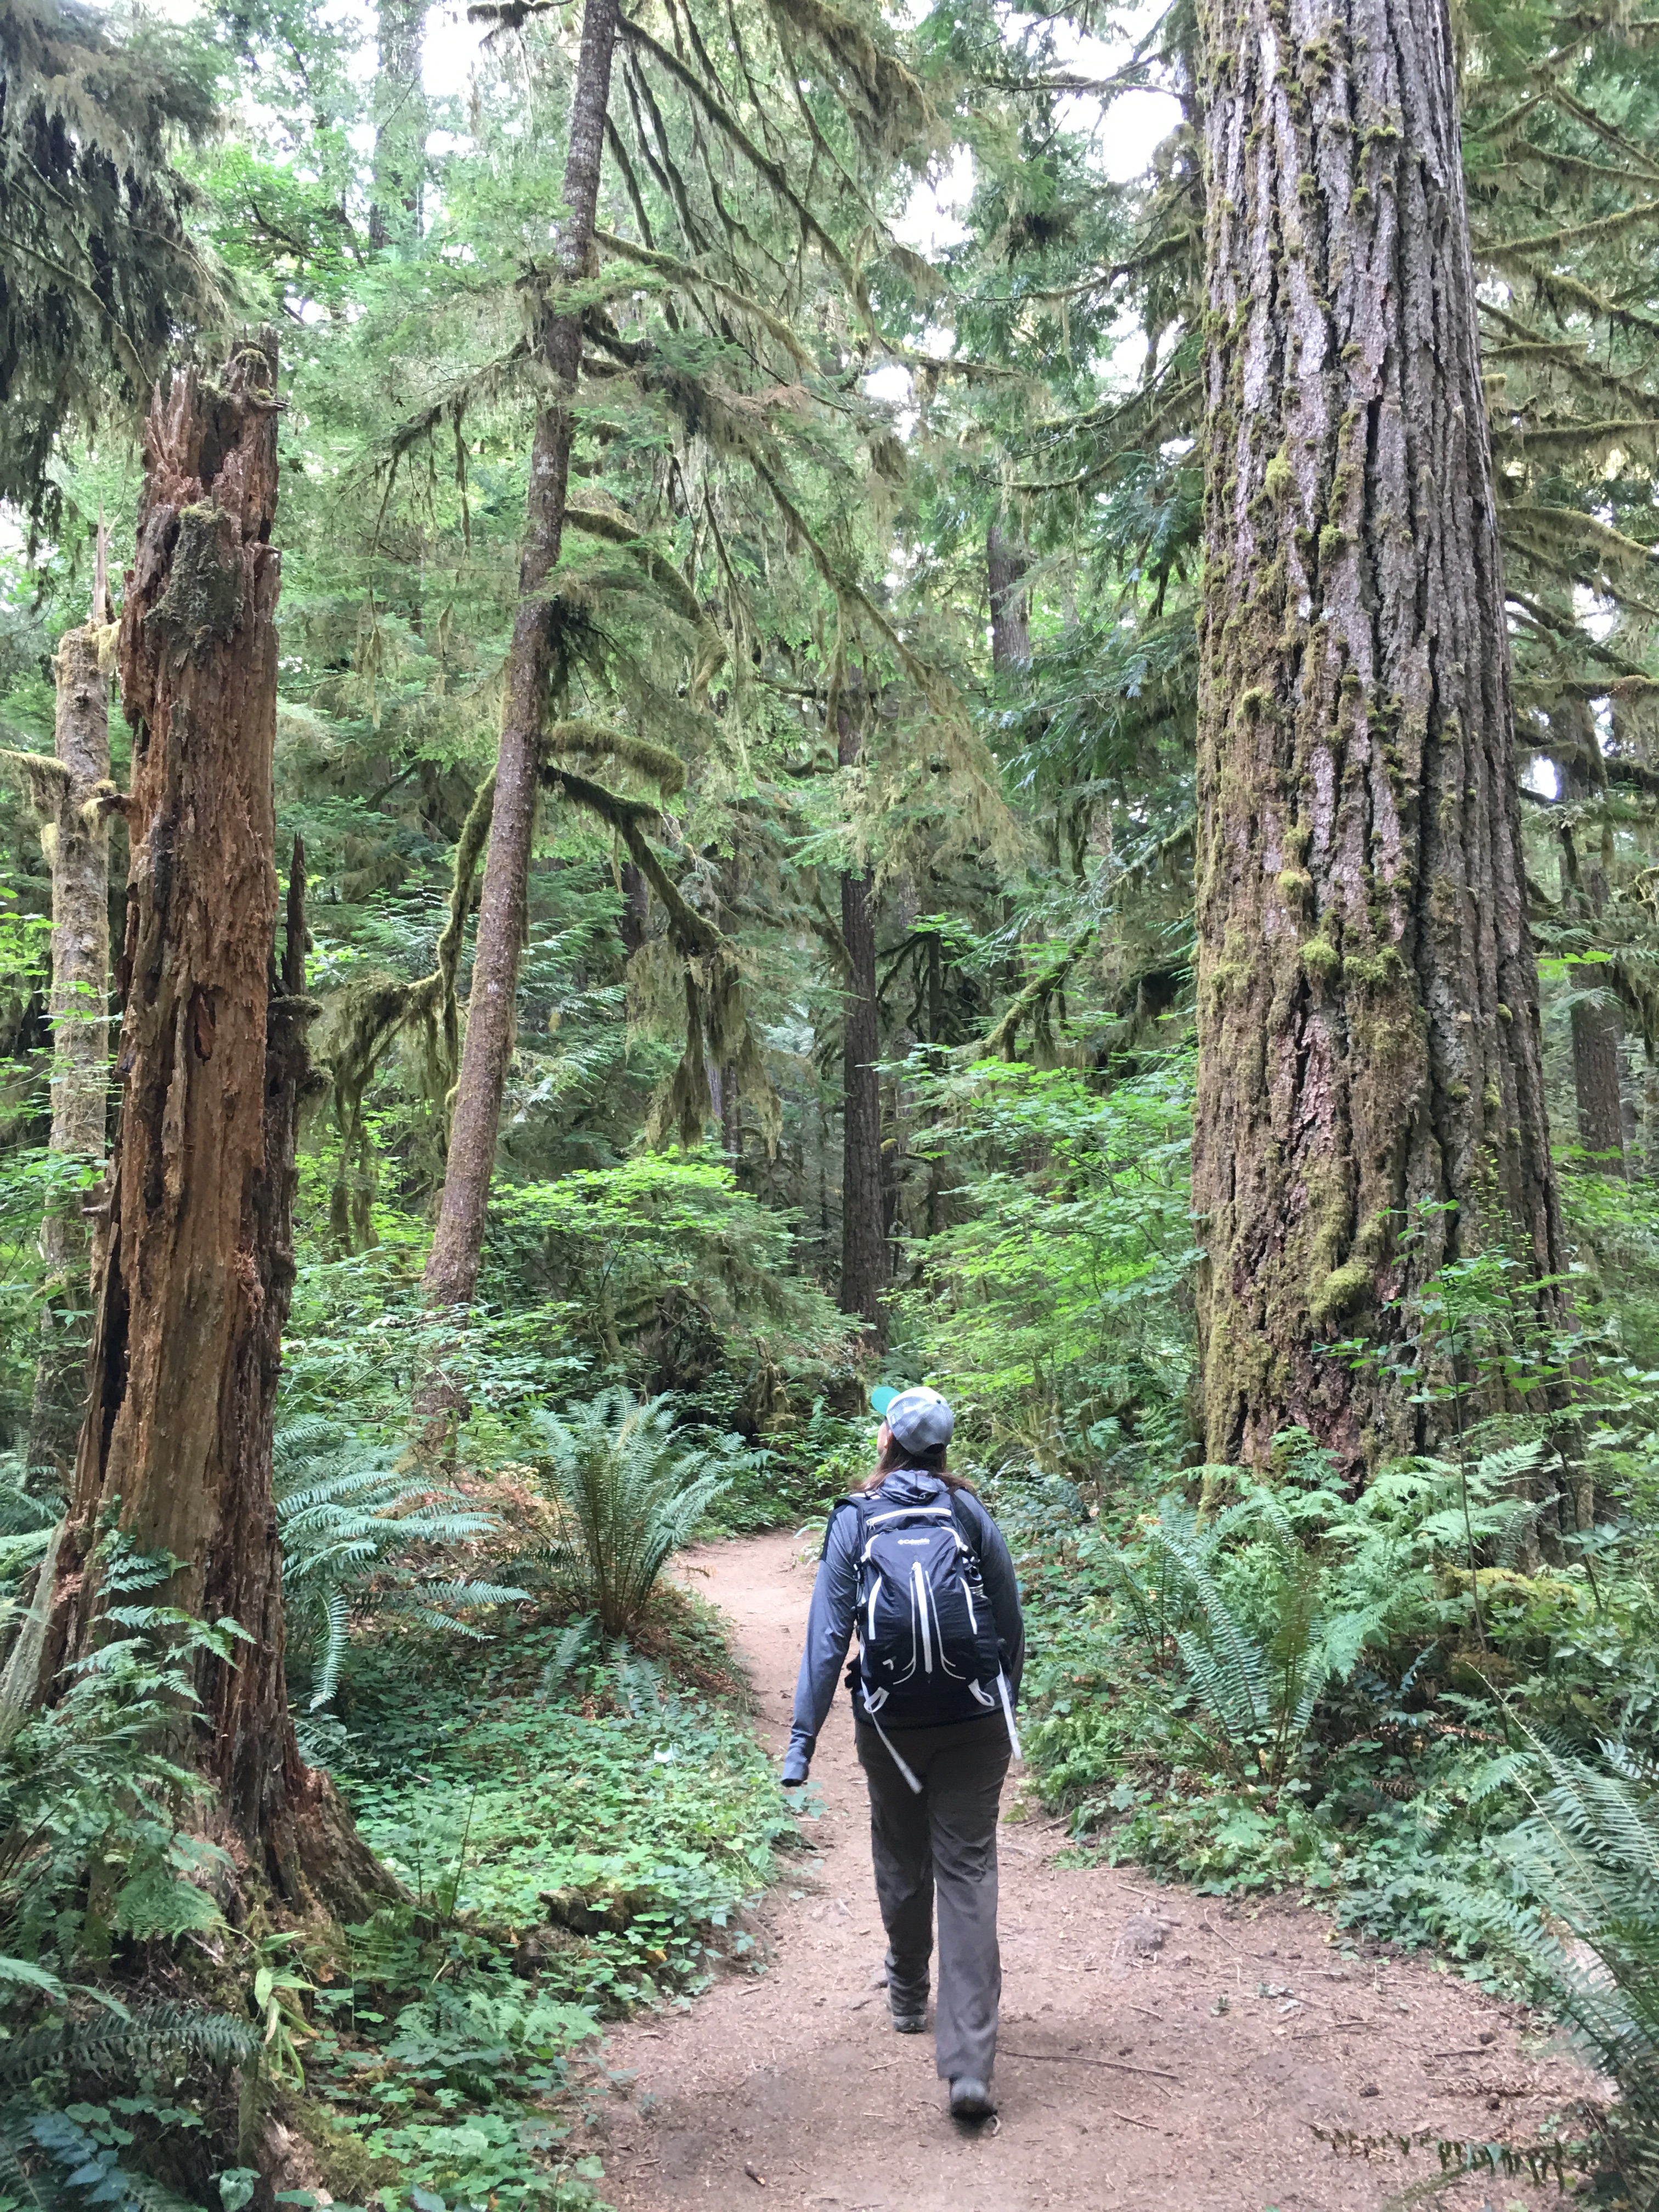 REI PDX: Exploring Oregon's Ancient Forests